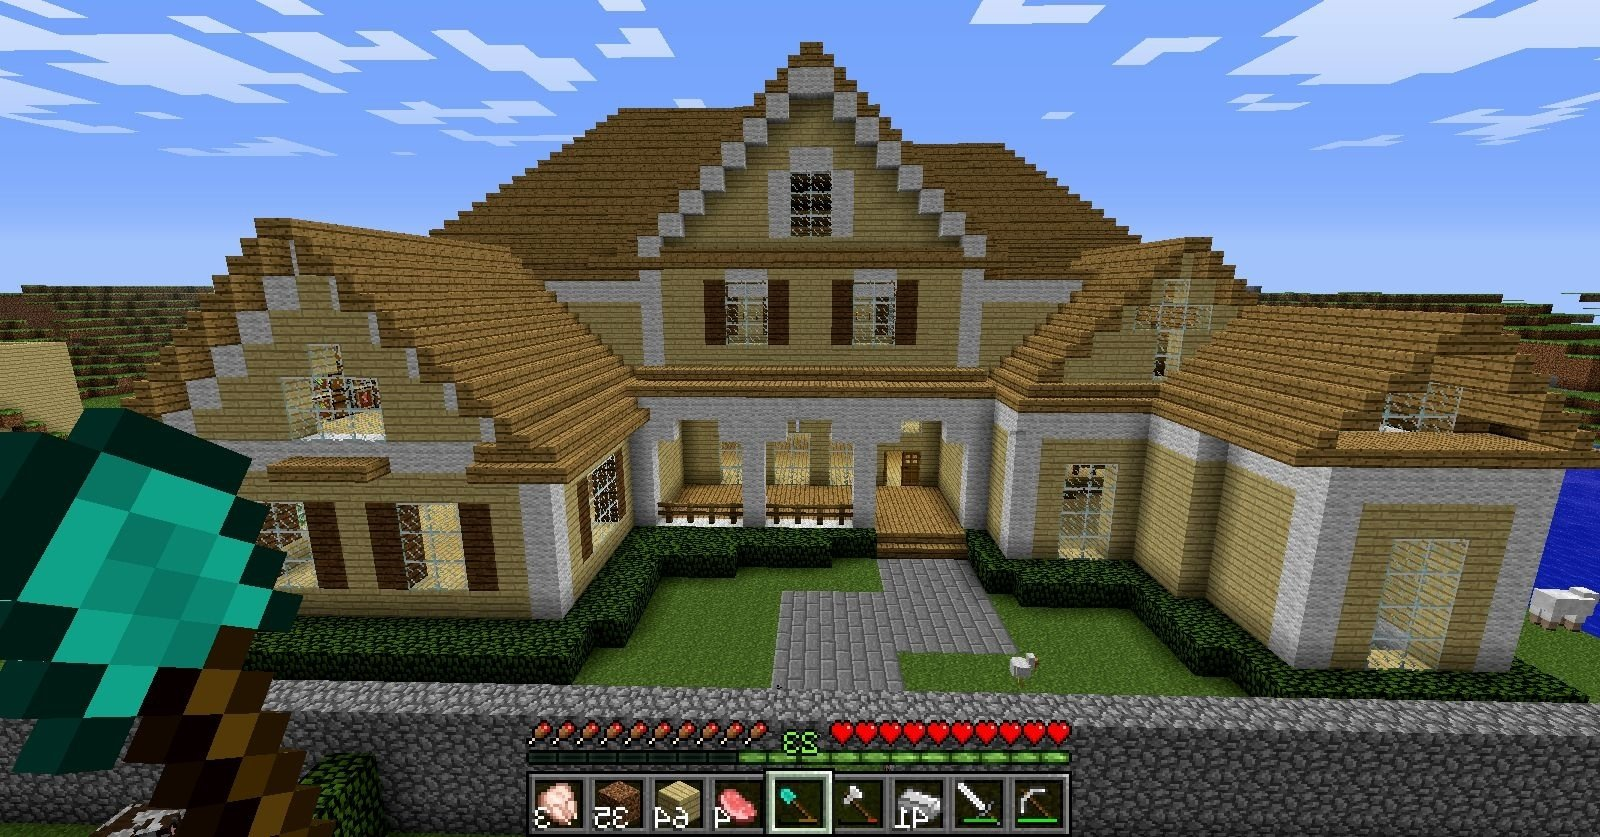 10 Wonderful Cool House Ideas For Minecraft most interesting cool houses minecraft pictures of home interior design ideas cheap wow amazing on mine craft house and planning 2020